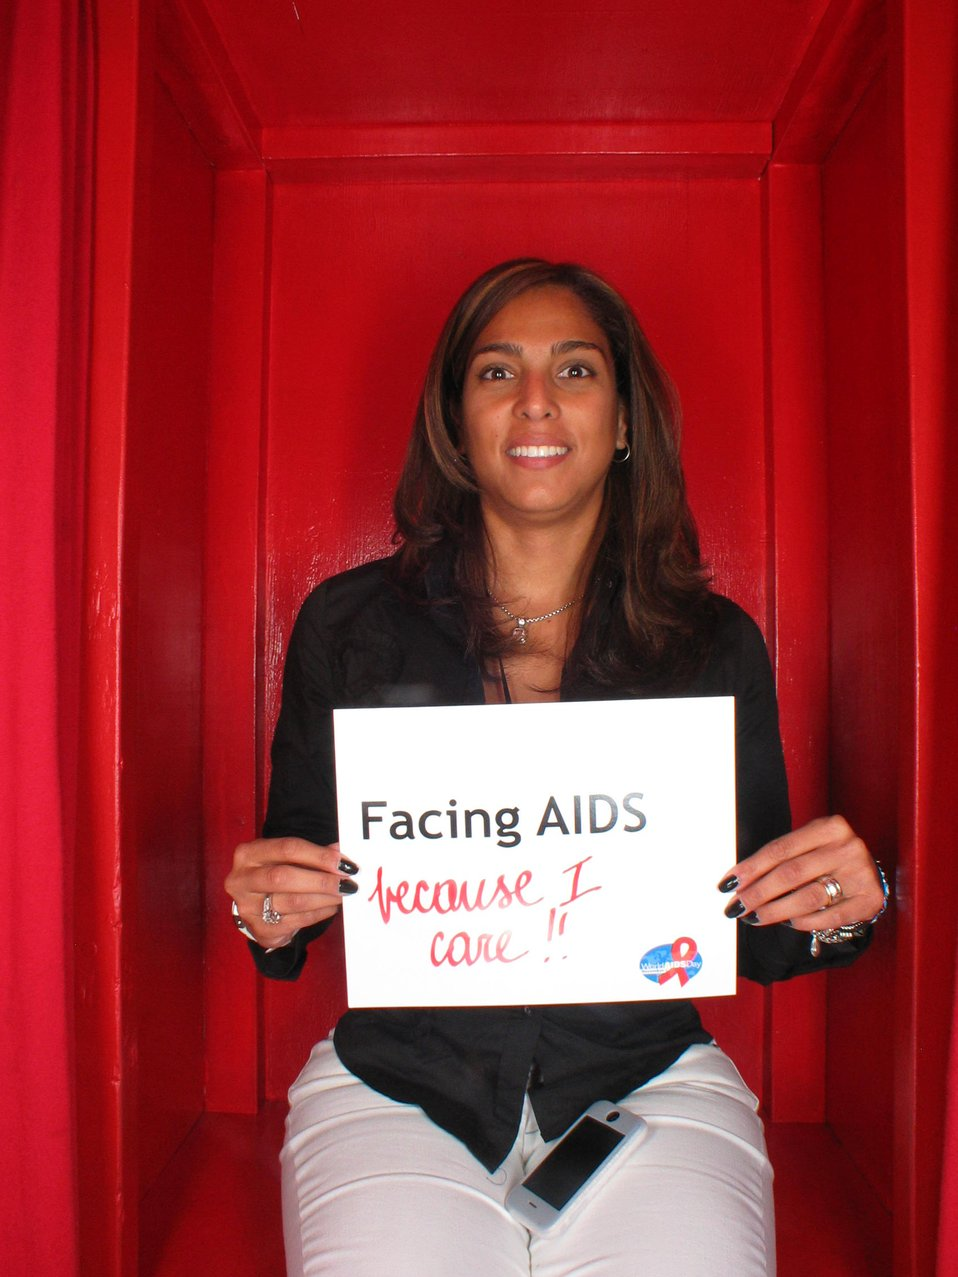 Facing AIDS because I care.